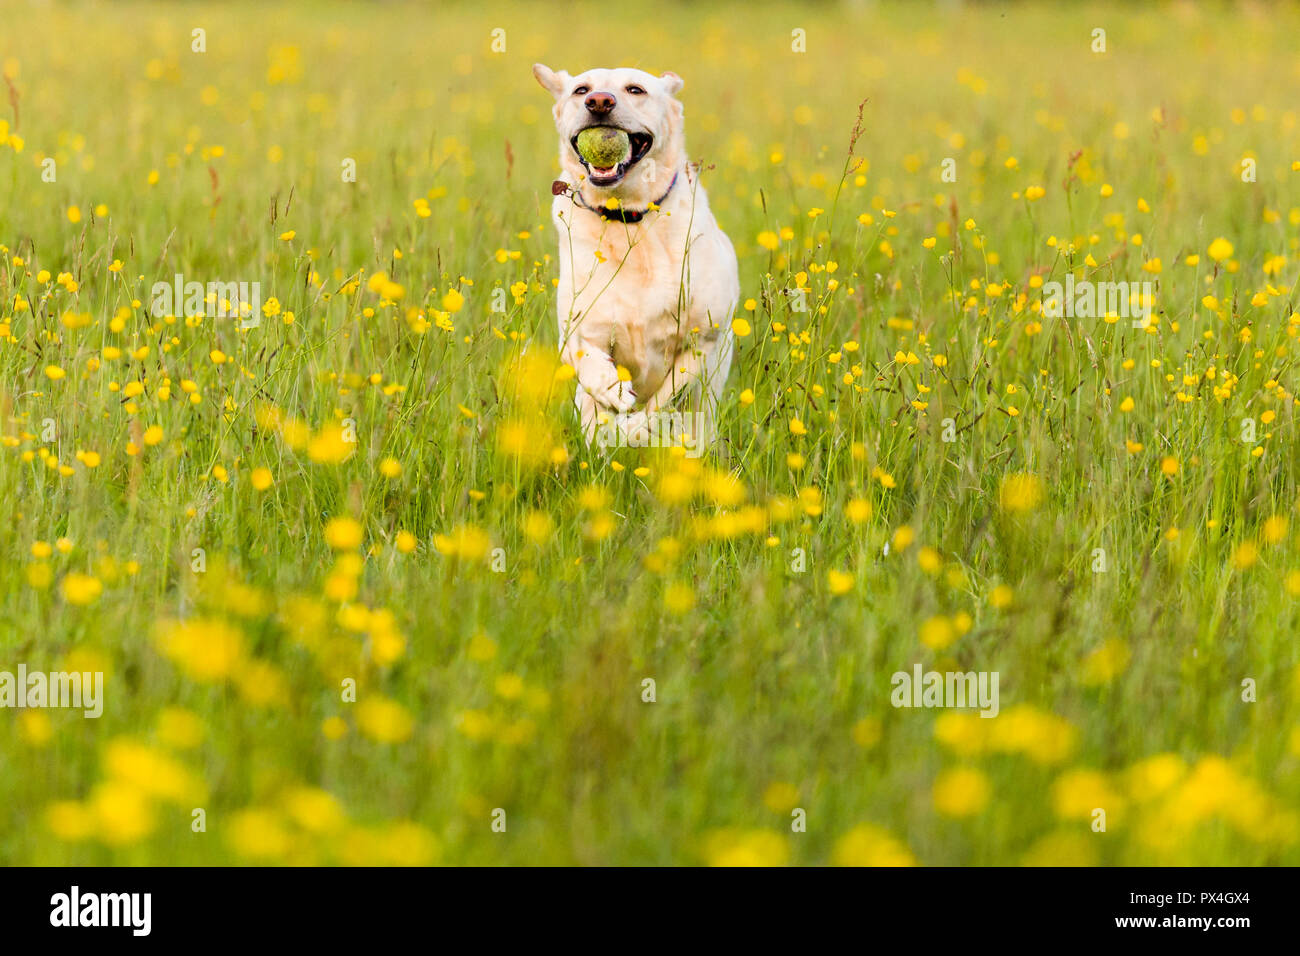 Yellow labrador fetching ball in a field of buttercups. Stock Photo